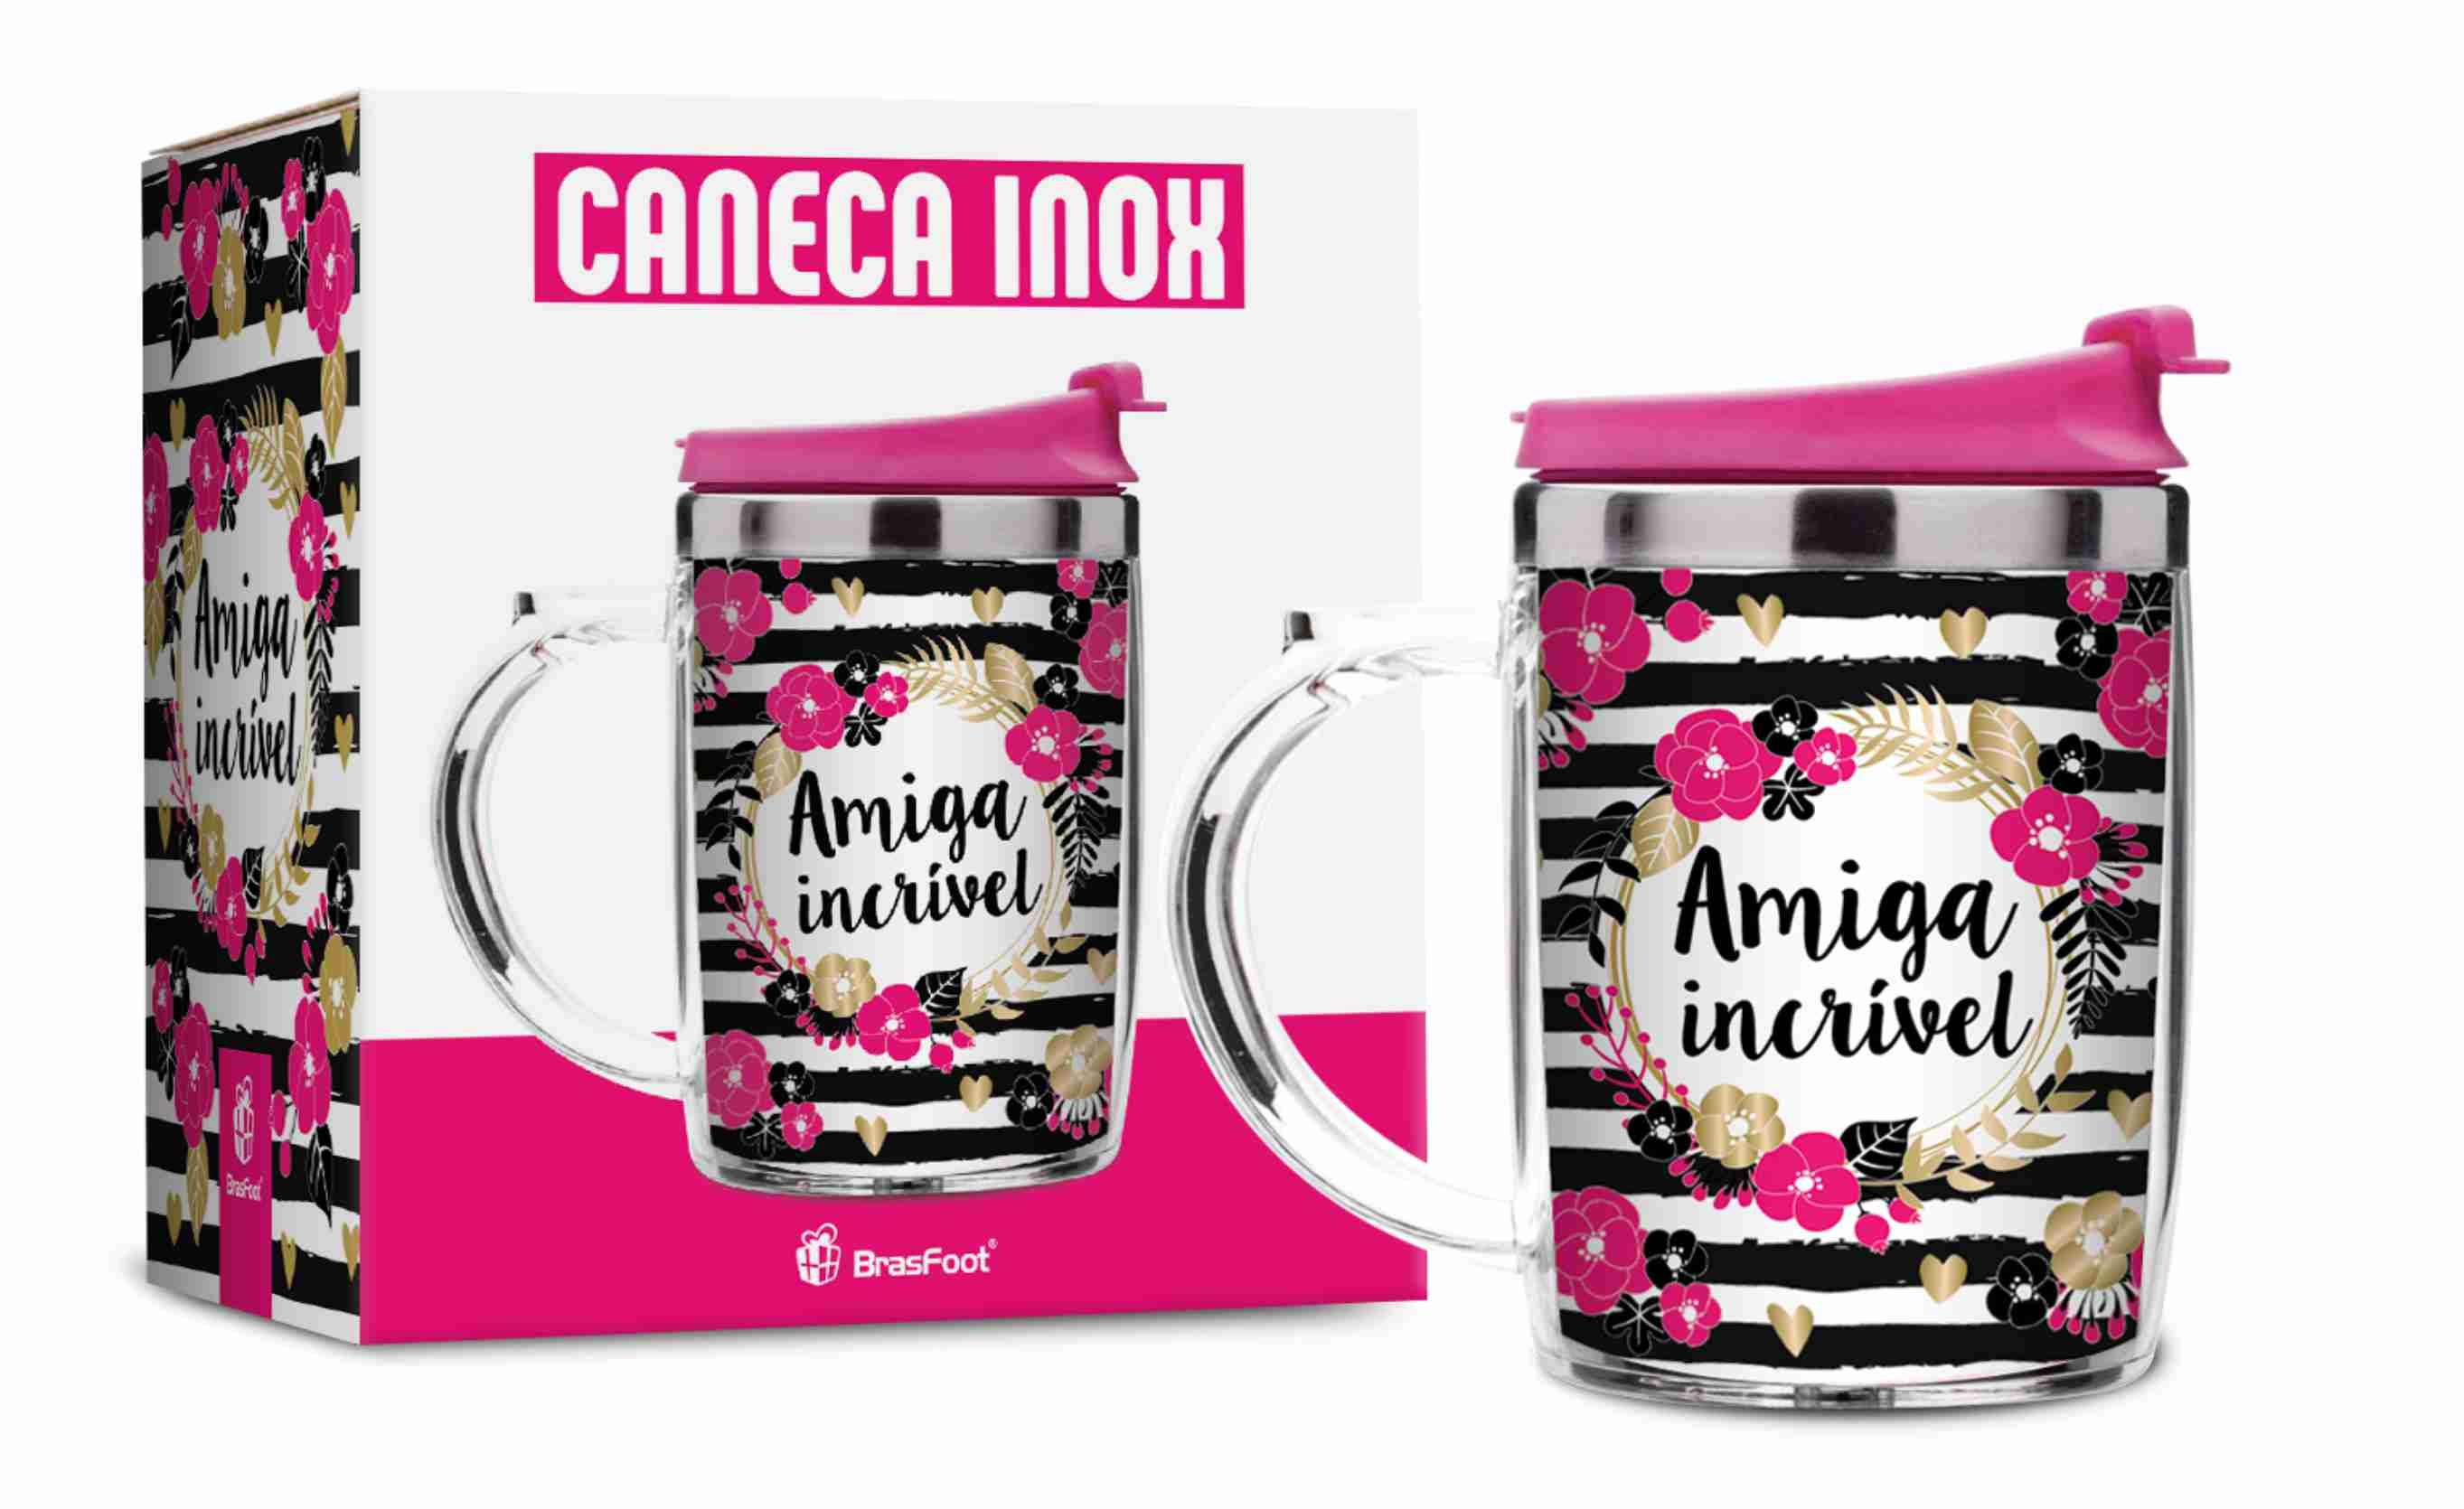 ptl-281-13-thermal_mug_michele_-_amiga_incrivel_3d_1.jpg